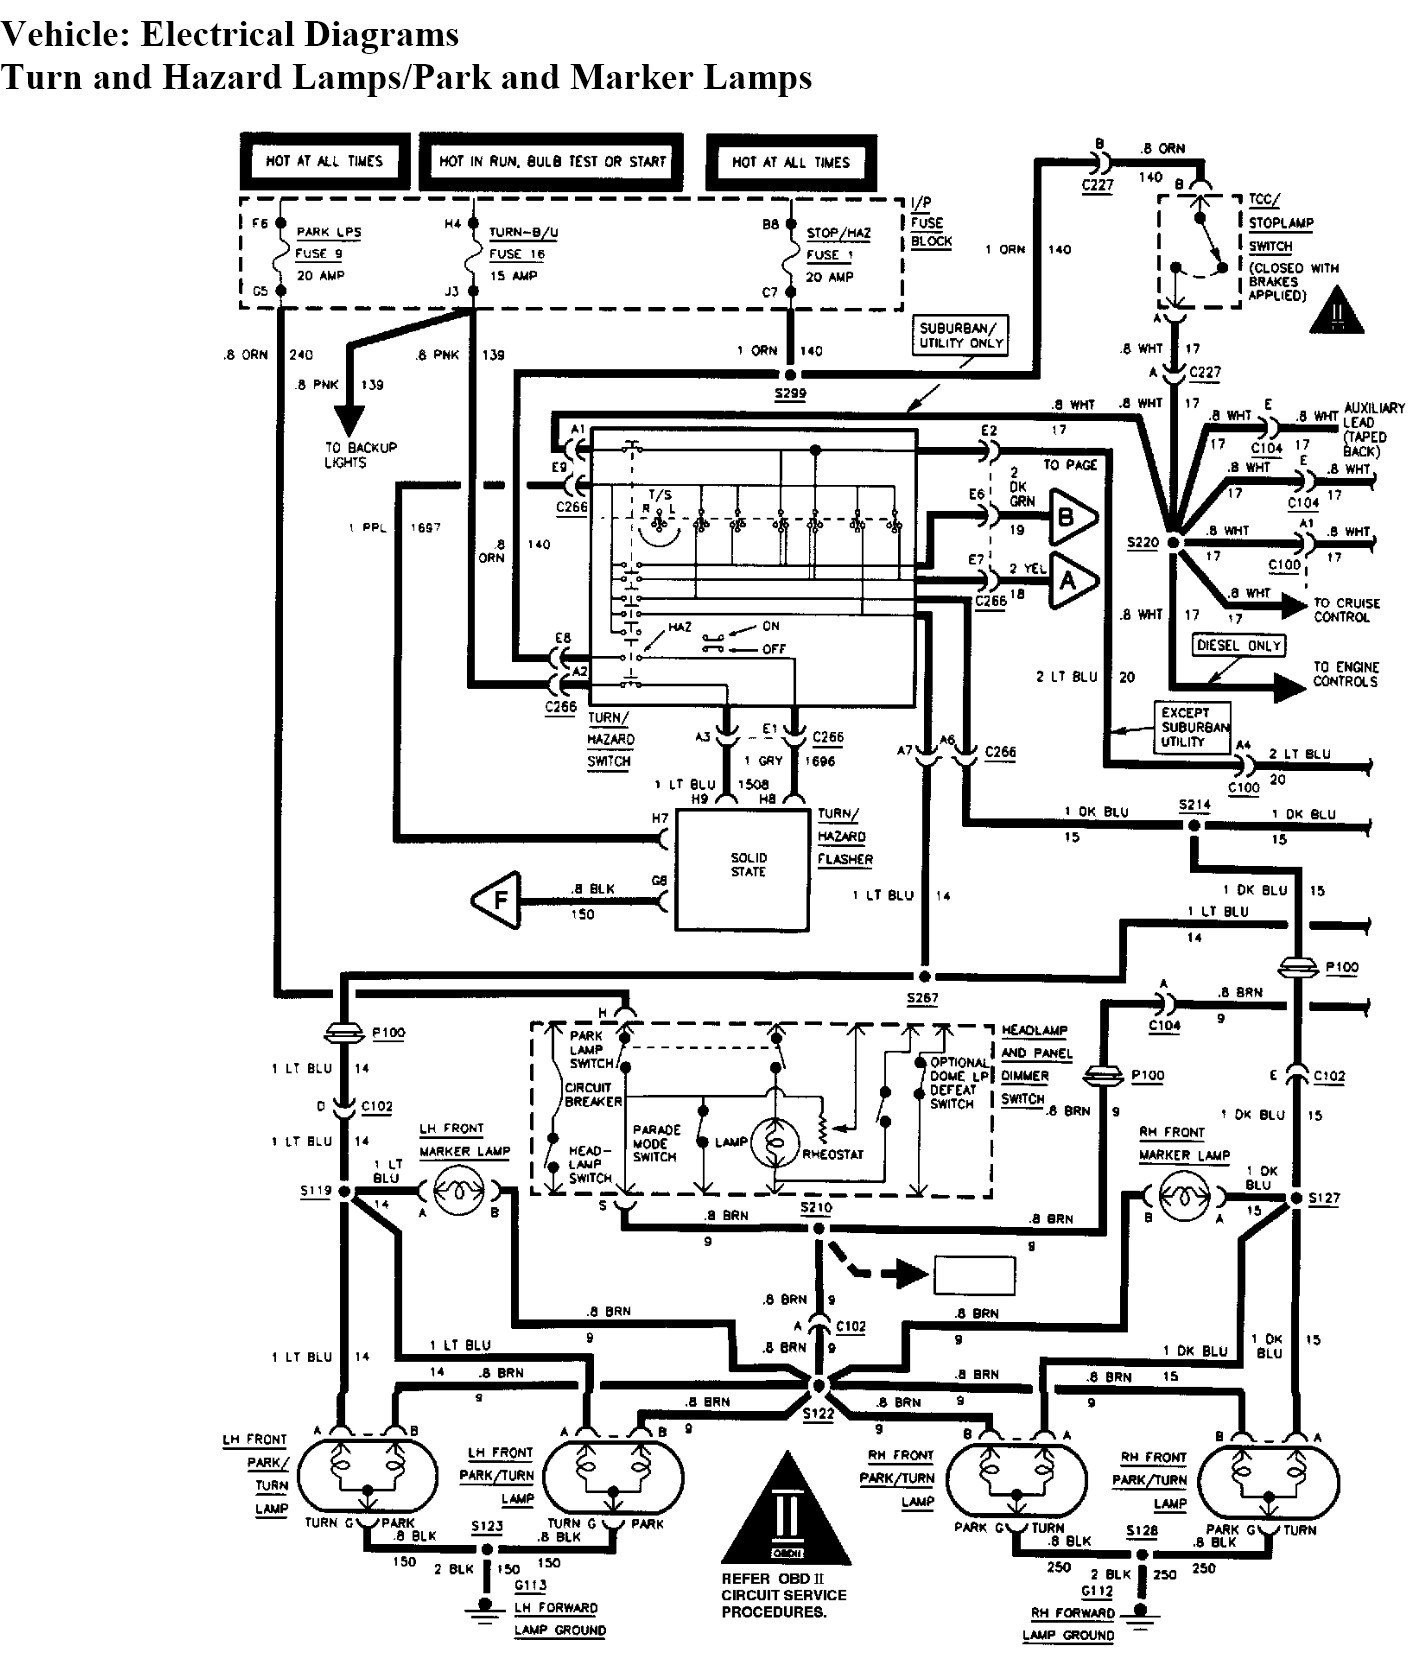 2002 Jeep Grand Brake Light Wiring Diagram $ Apktodownload.com